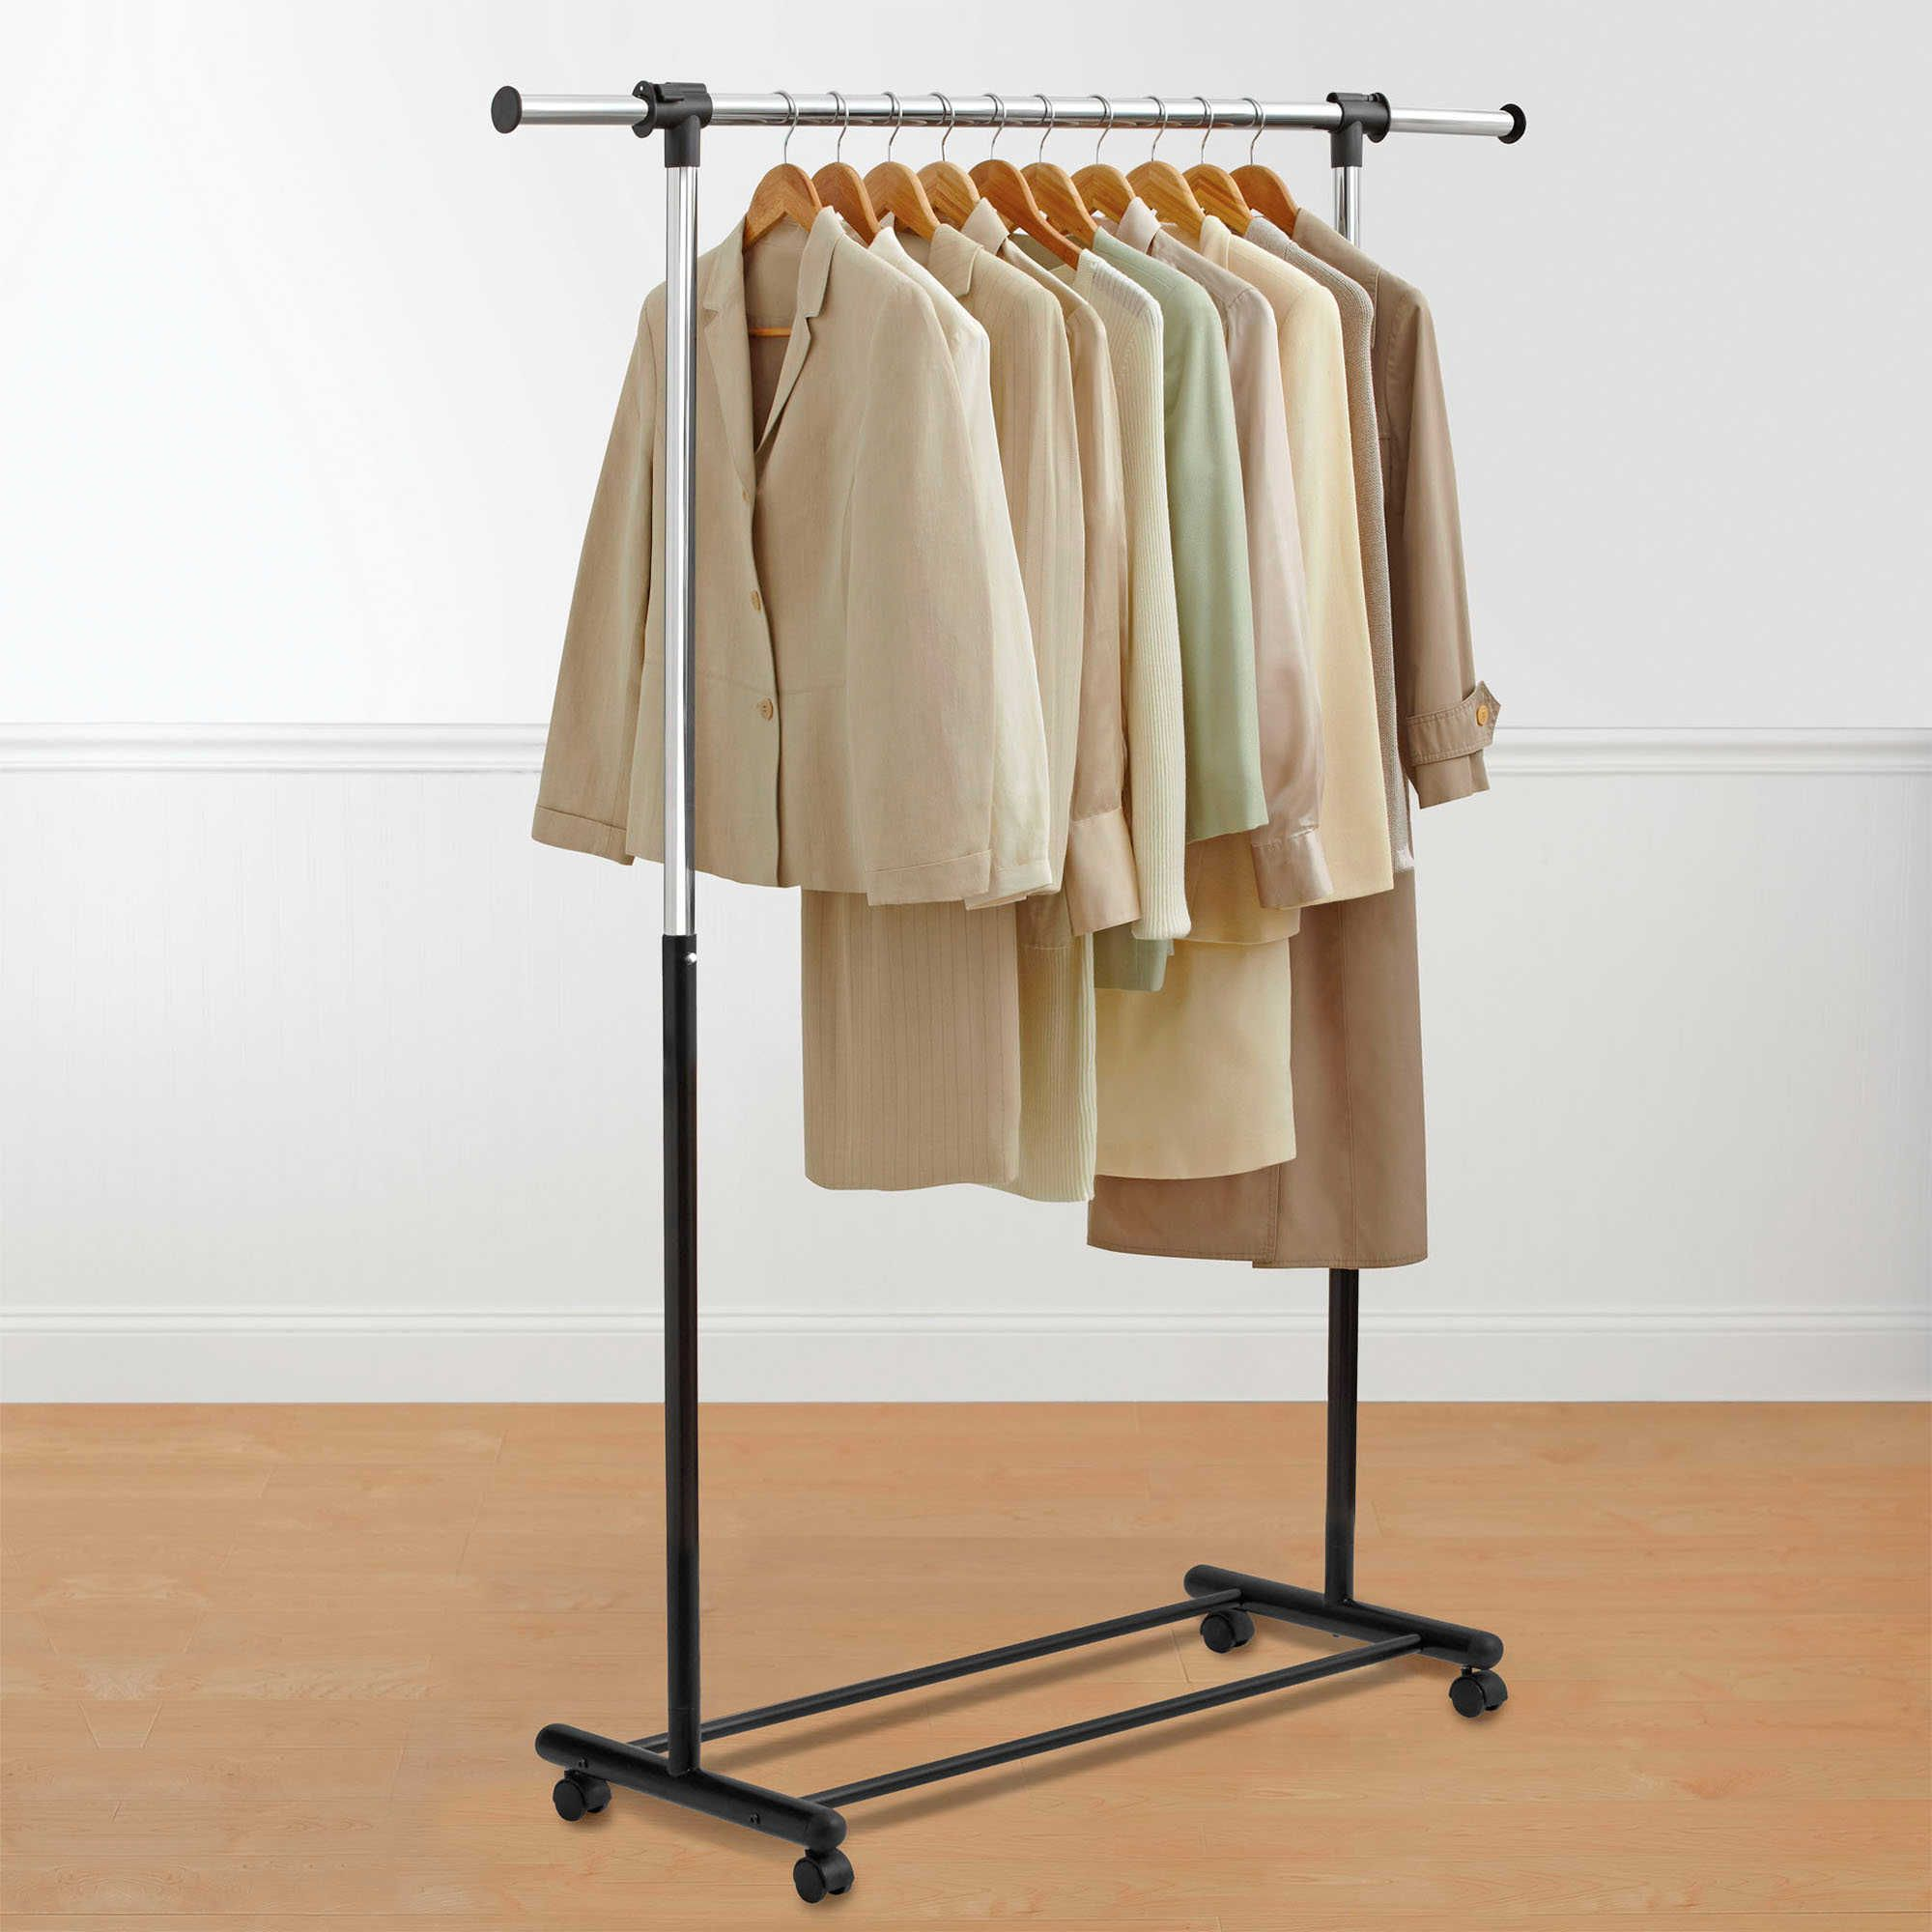 Bed Bath And Beyond Garment Rack New Portable And Expandable Garment Rack In Blackchrome  Garment Racks Design Inspiration